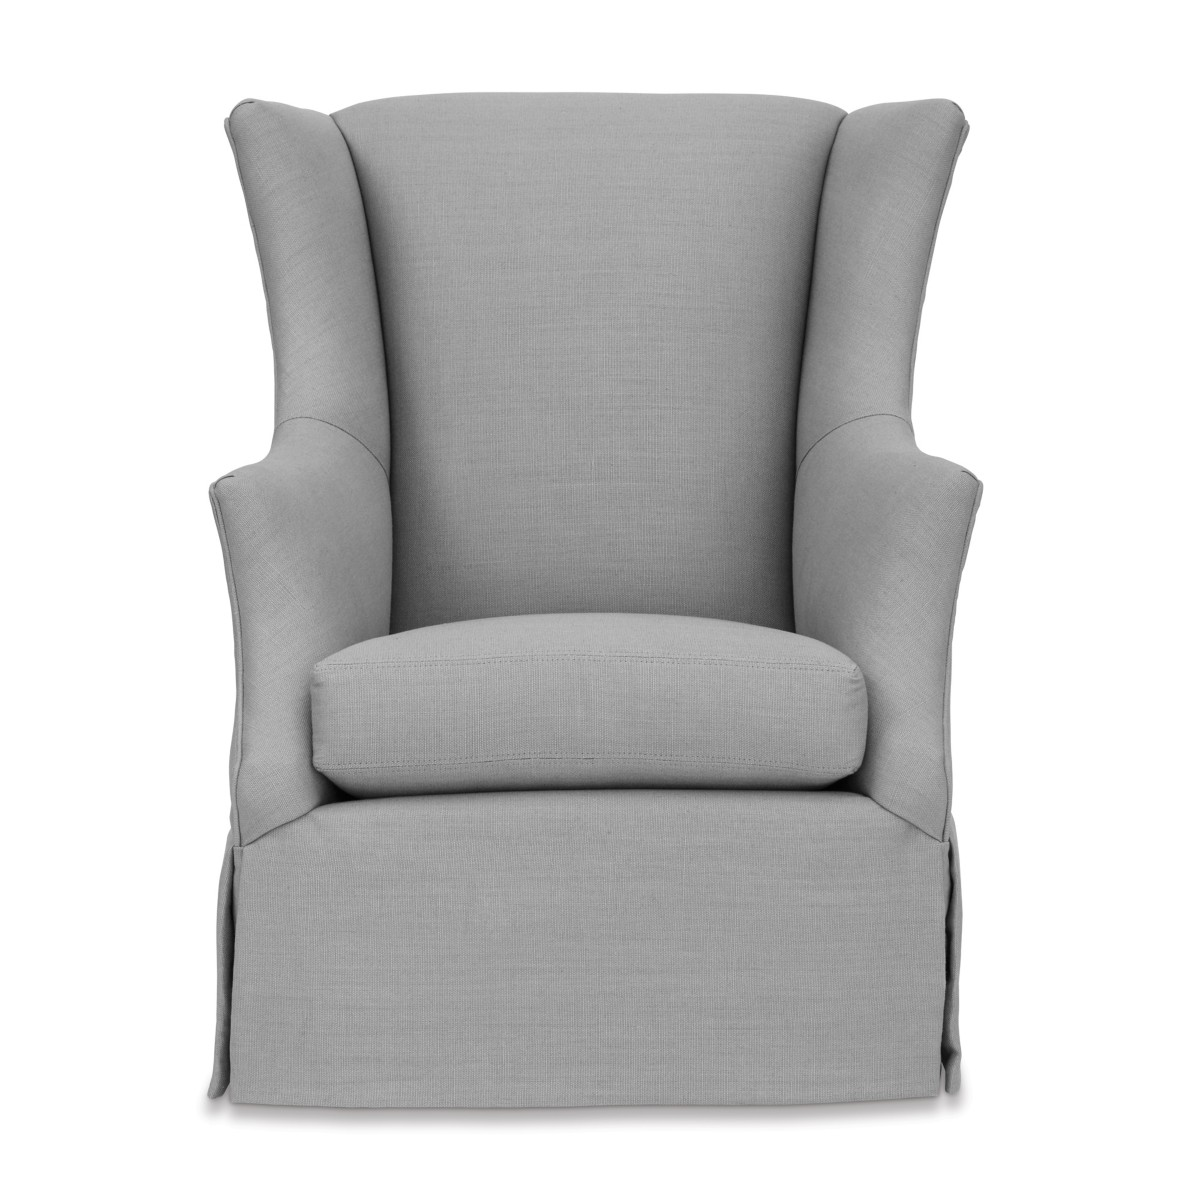 Lilah Swivel Chair